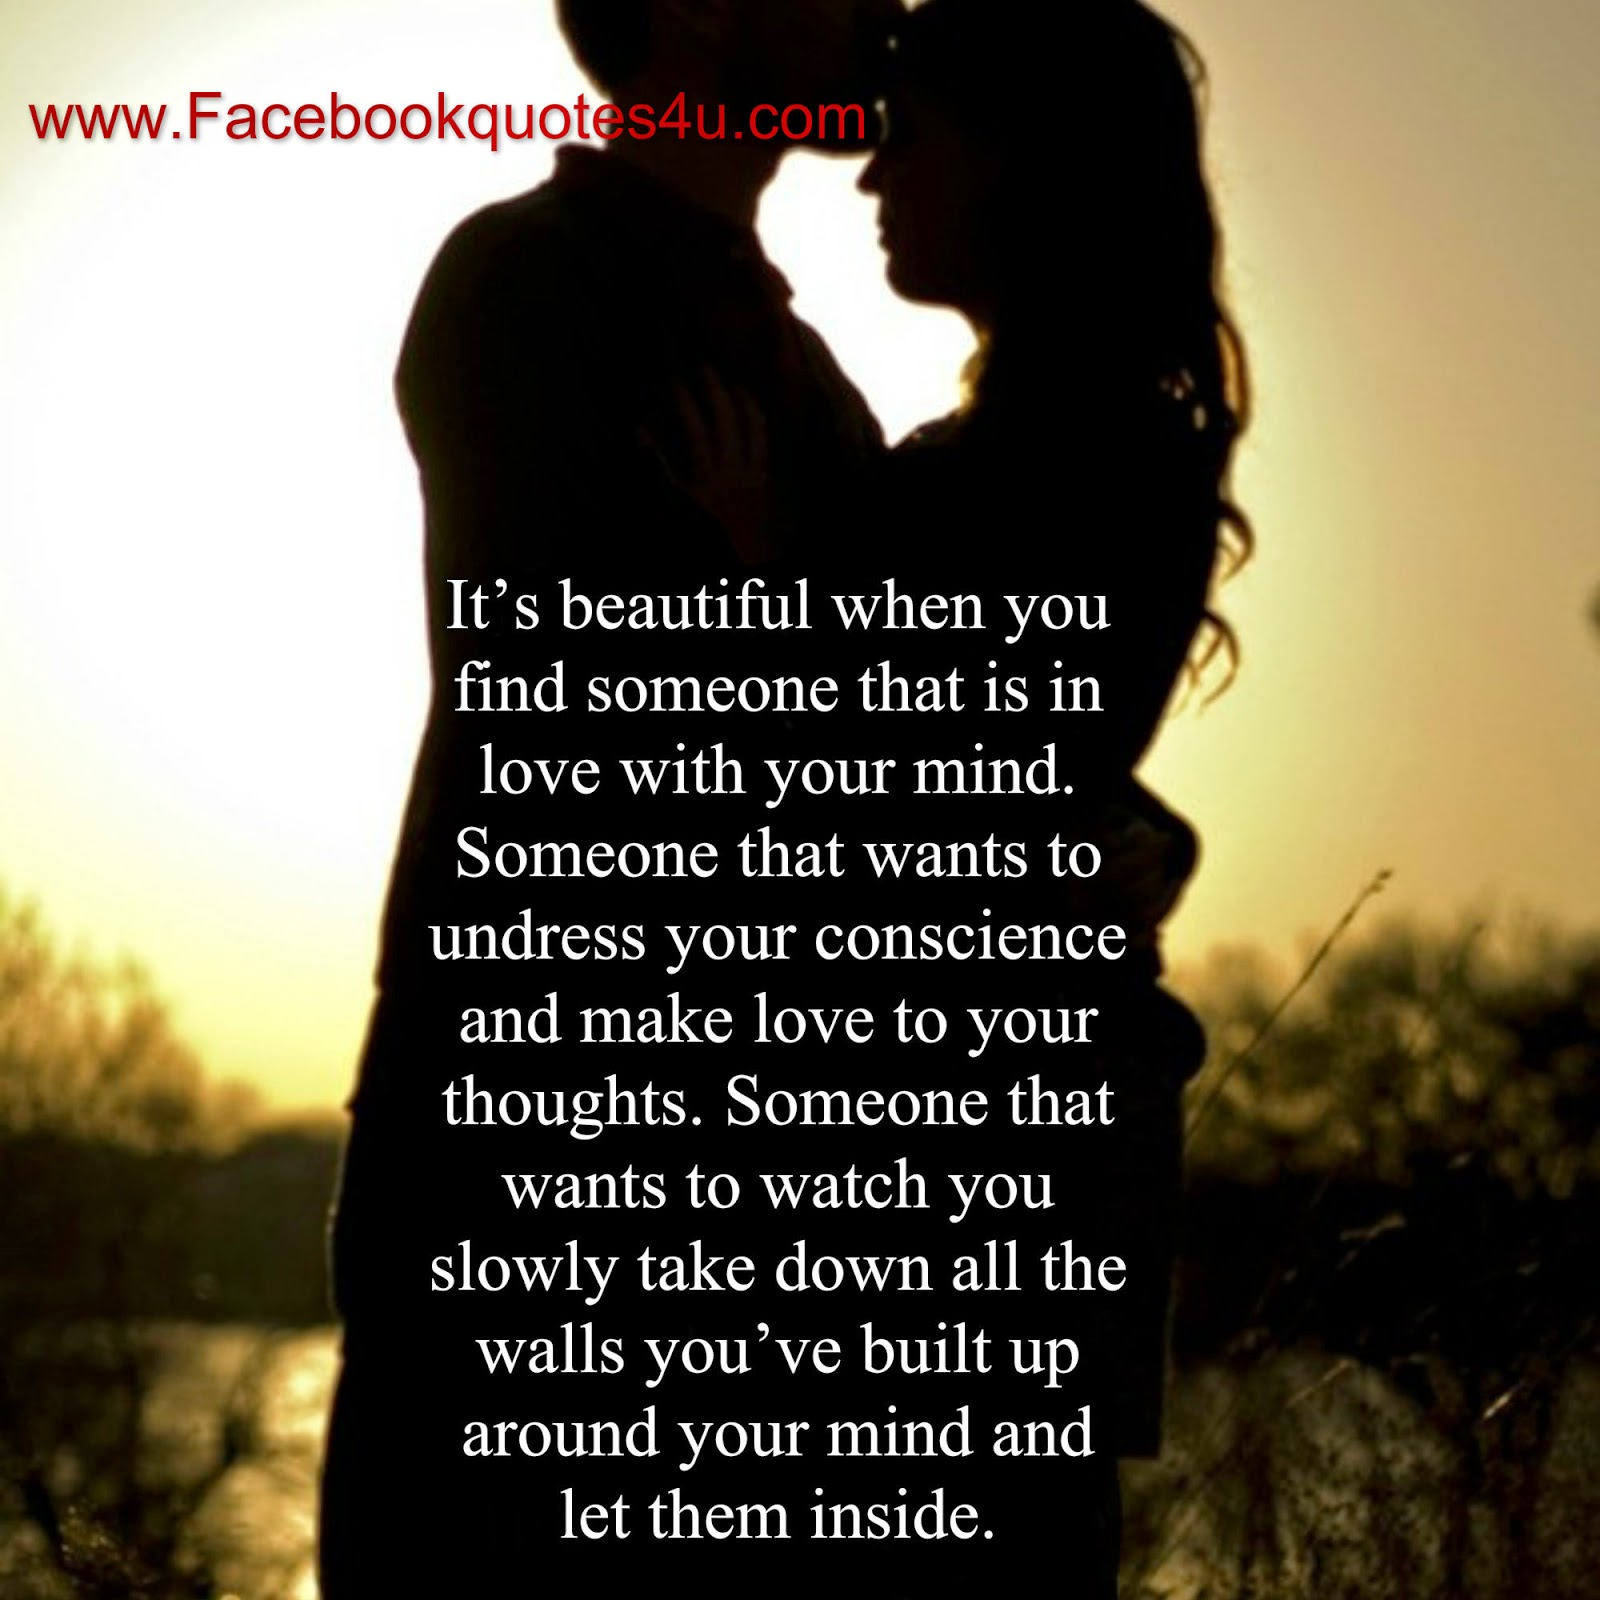 Making Love Quotes Pictures Mesmerizing Quotes When You Find Your Soulmate